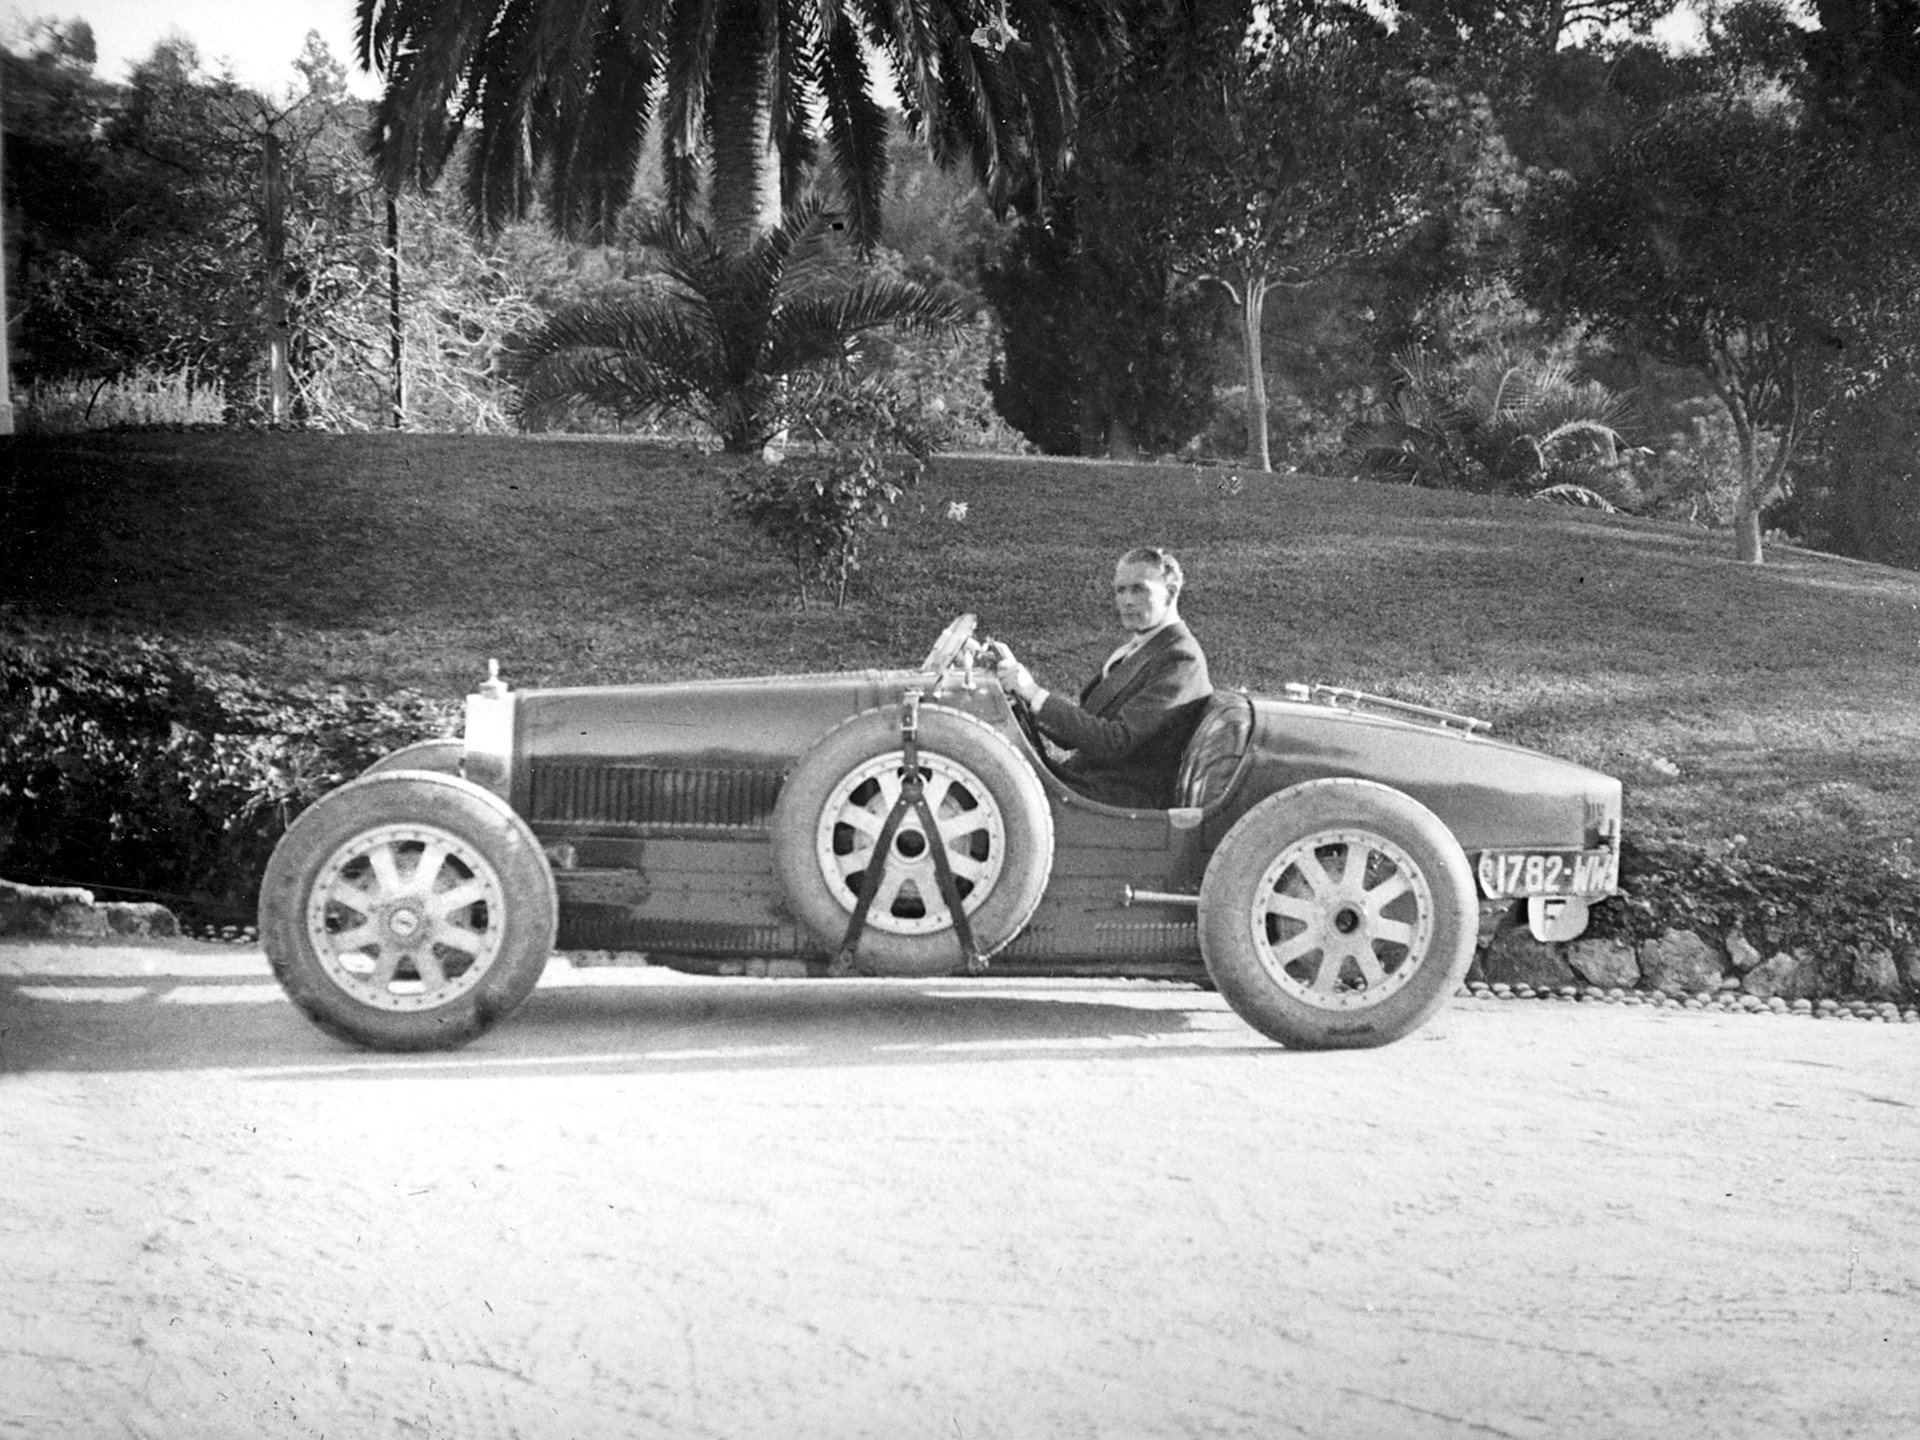 Lord Cholmondeley pictured with his Bugatti shortly after delivery in 1925 (note the temporary French registration plates).